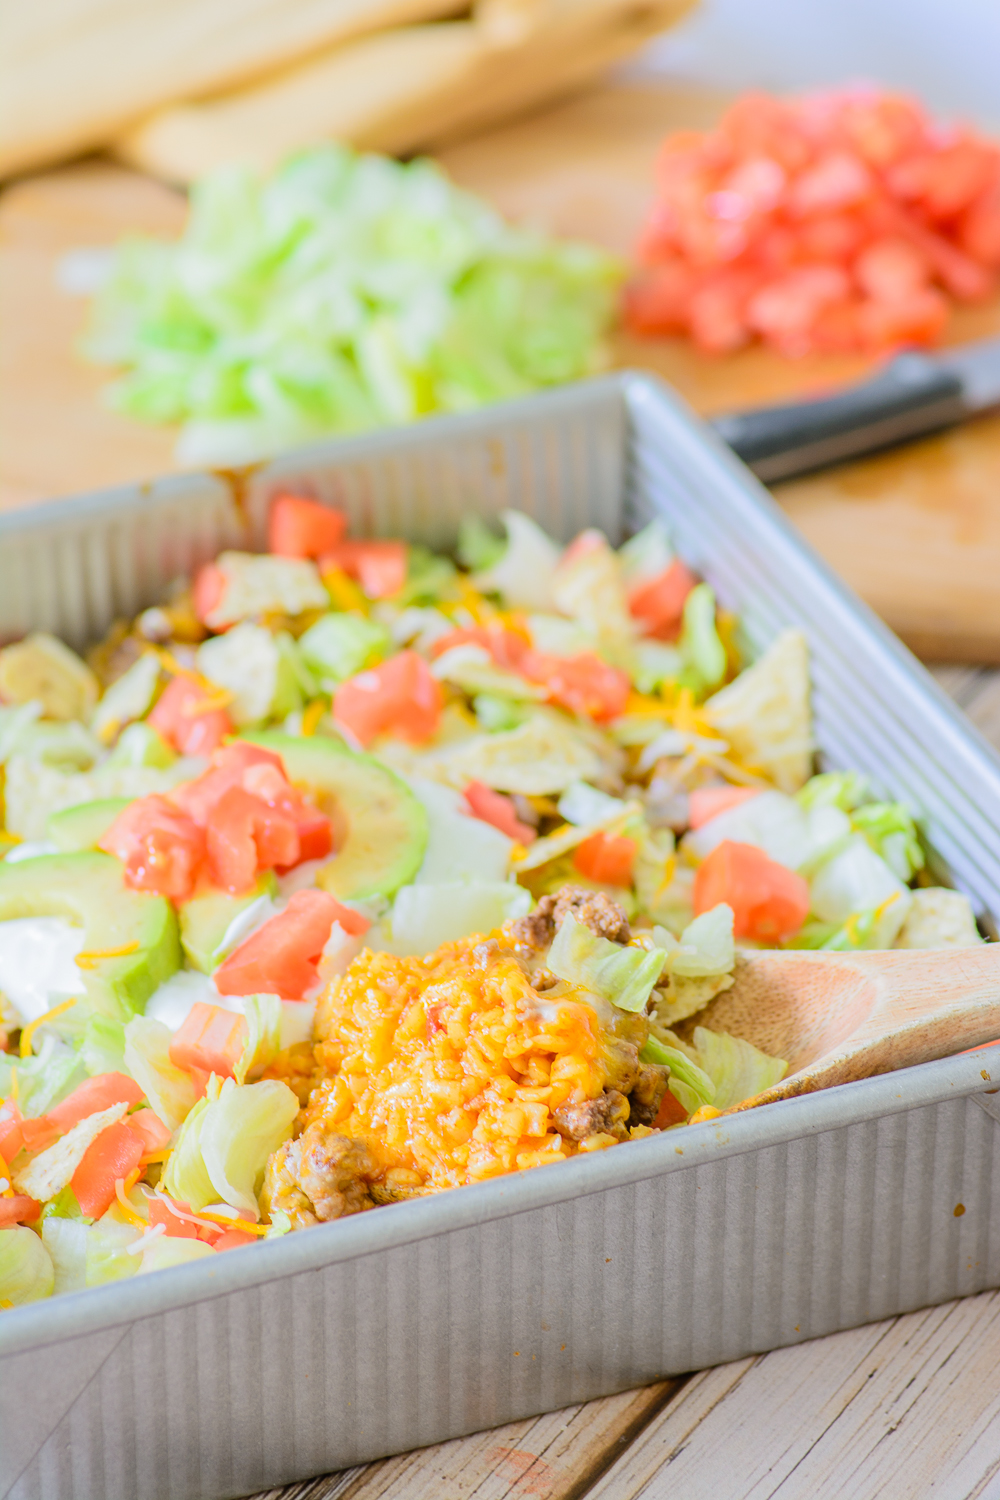 Easy casserole recipes to freeze